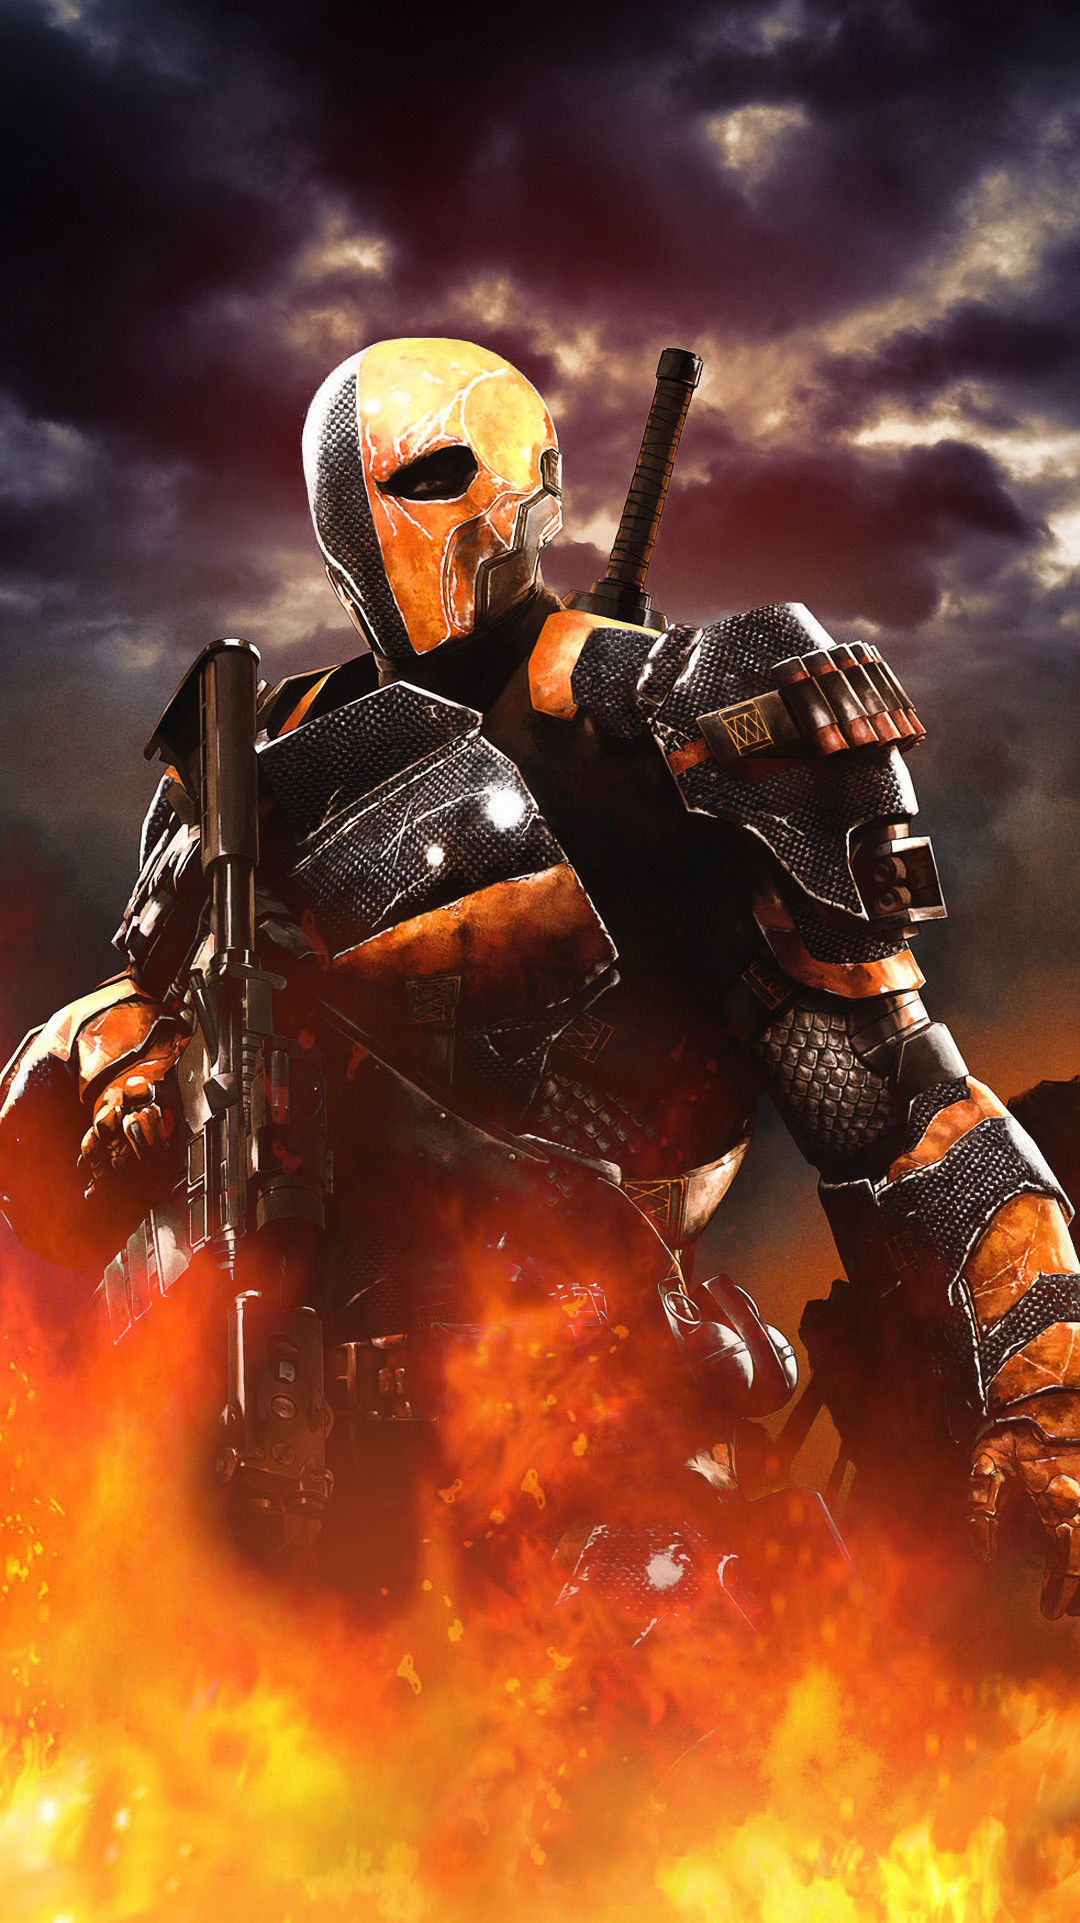 Deathstroke Wallpaper Deathstroke wallpaper 1080x1923